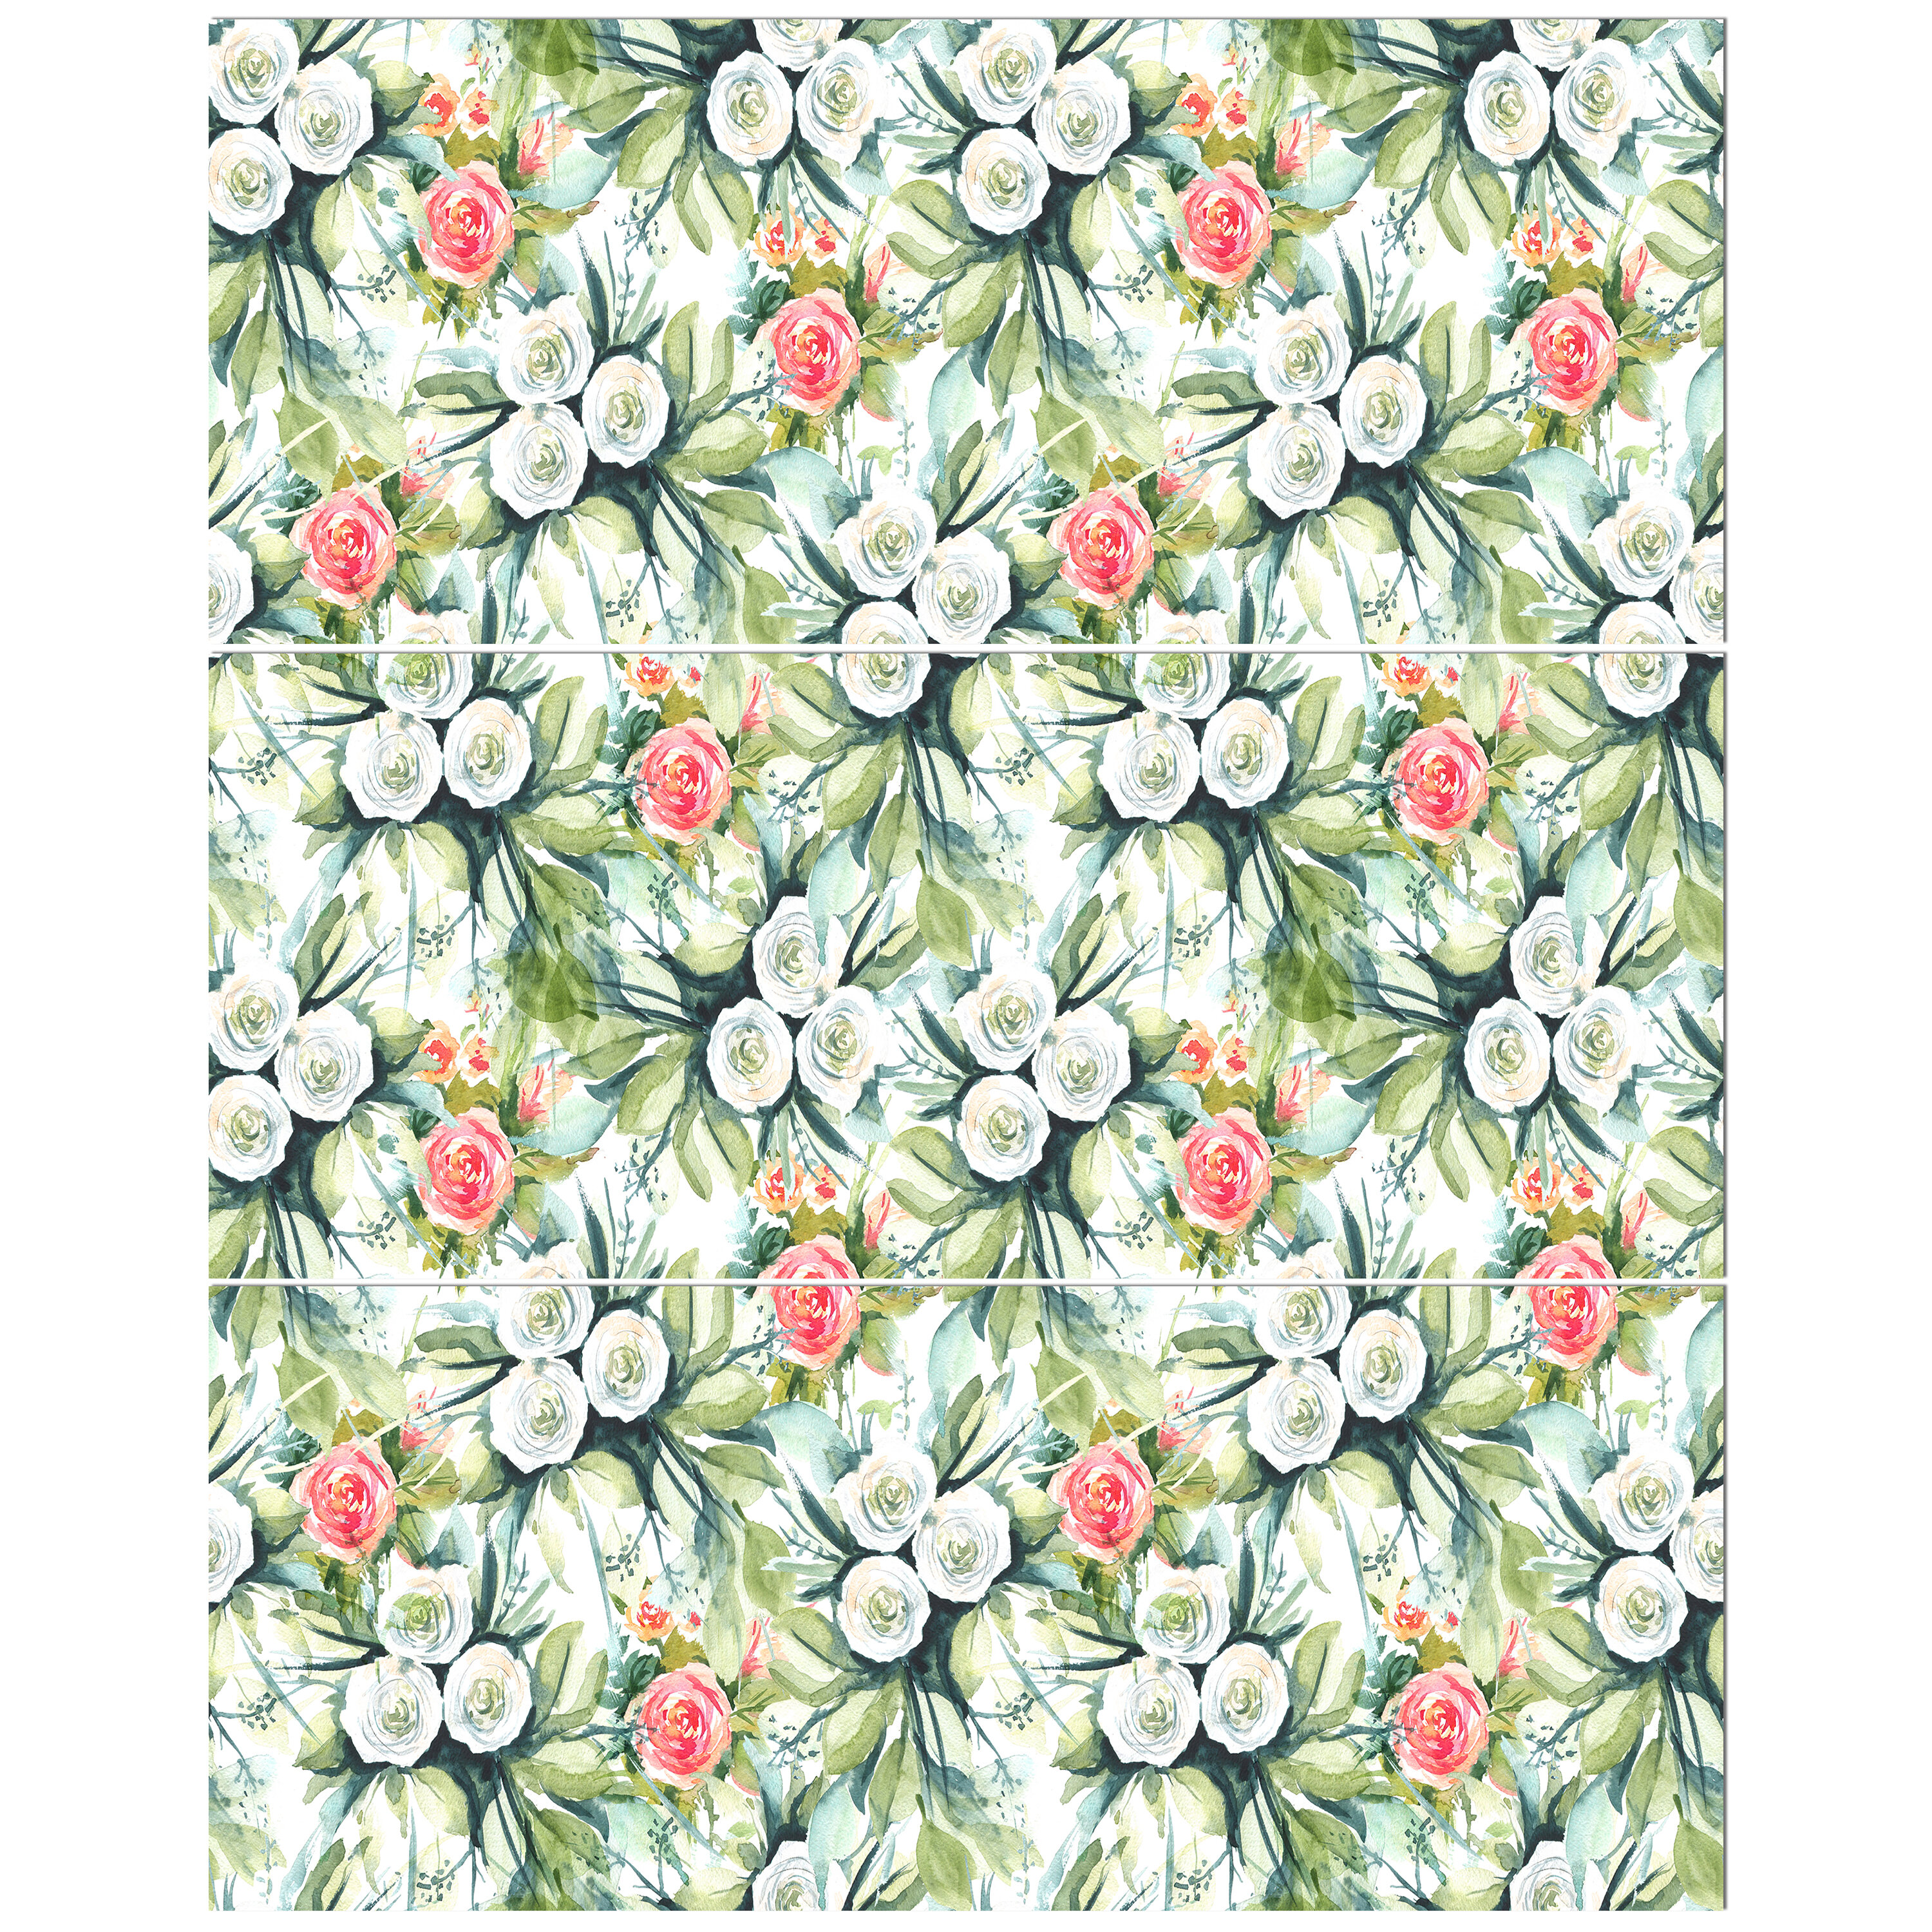 East Urban Home Floral Seamless Pattern Flower Background Oil